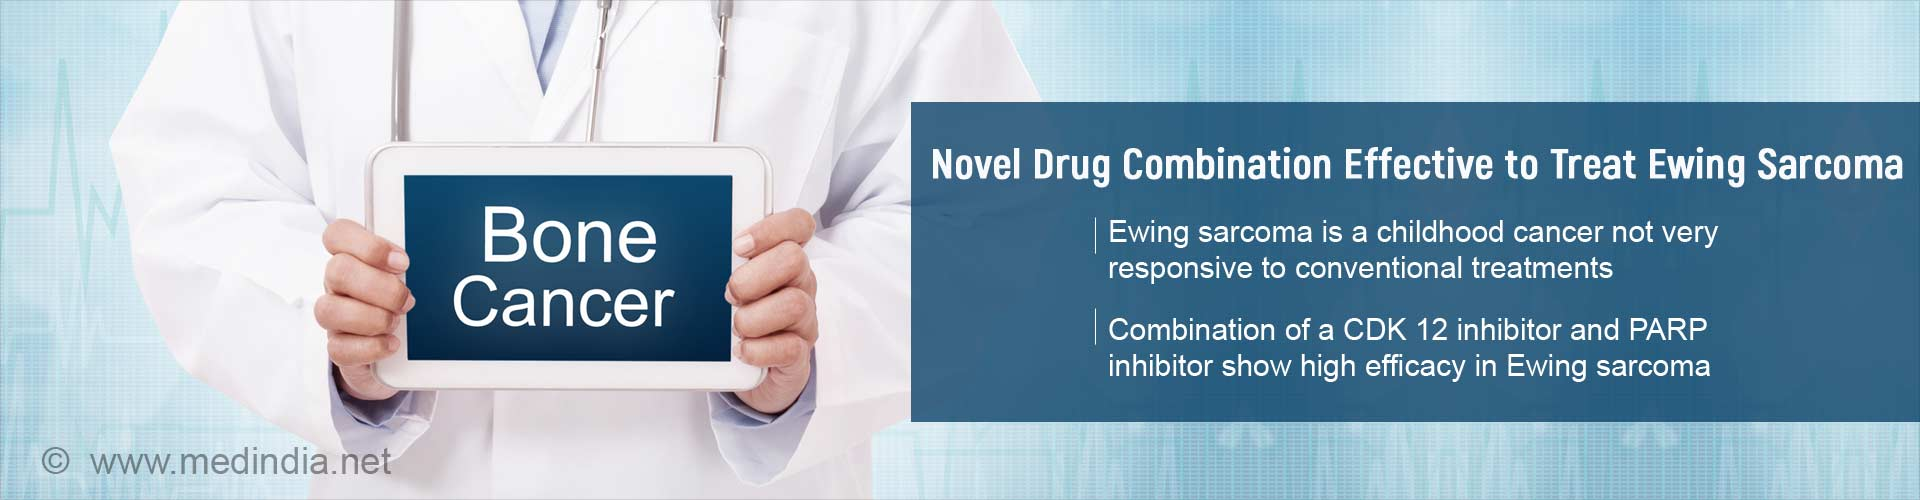 novel drug combination to treat ewing sarcoma